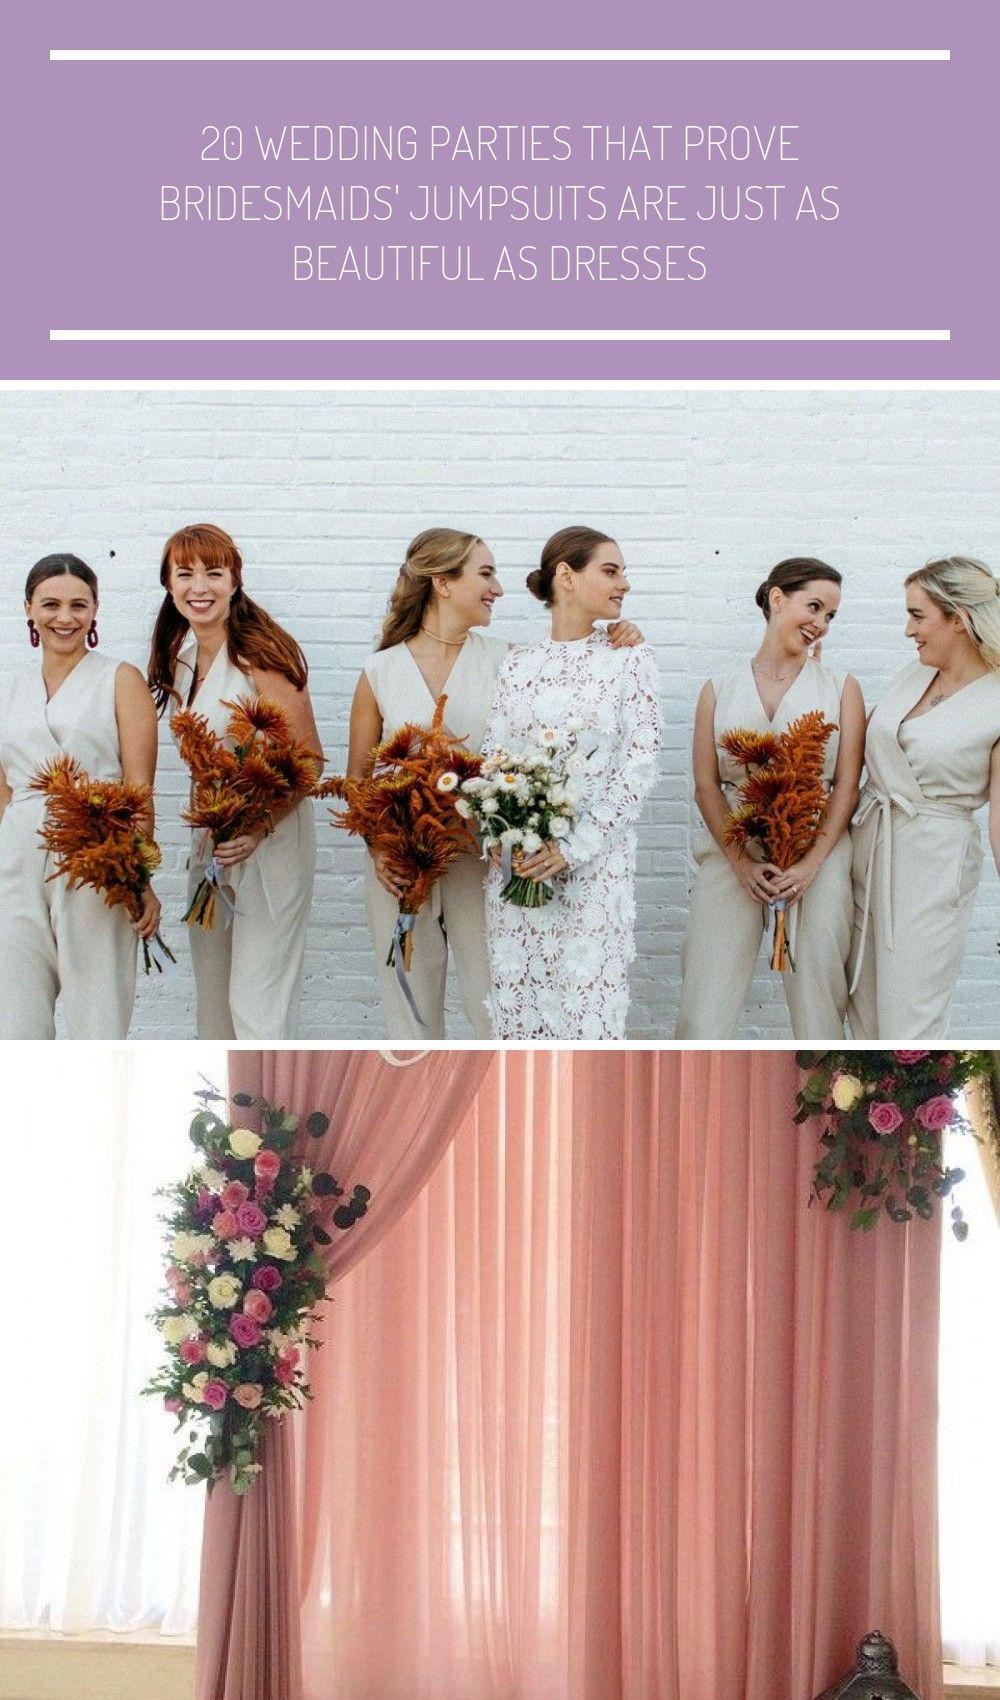 The look is fashion-forward, versatile, and flattering—plus, the pants component of these garments allows your crew to move freely on the dance floor. #wedding #bridesmaids #weddingfashion #jumpsuits #weddingparty #weddingideas #weddings #highfashion #weddingtrends | Martha Stewart Weddings - 20 Wedding Parties That Prove Bridesmaids' Jumpsuits Are Just as Beautiful as Dresses #Wedding party 20 Wedding Parties That Prove Bridesmaids' Jumpsuits Are Just as Beautiful as Dresses #bridesmaidjumpsu #bridesmaidjumpsuits